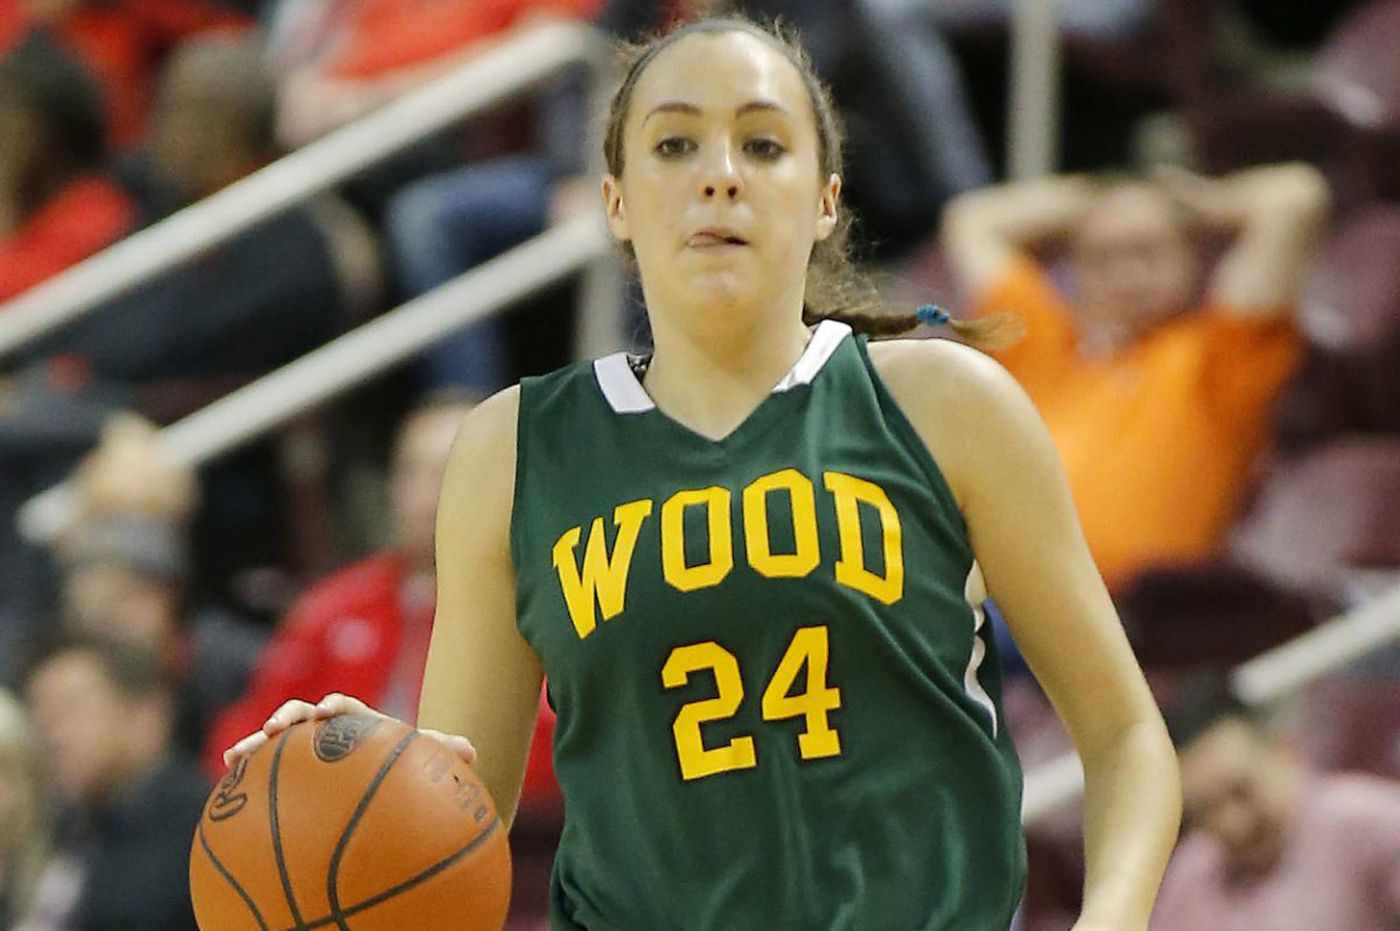 Saturday's Pa. roundup: Archbishop Wood girls knock off previously-undefeated West Chester Henderson in quarterfinals